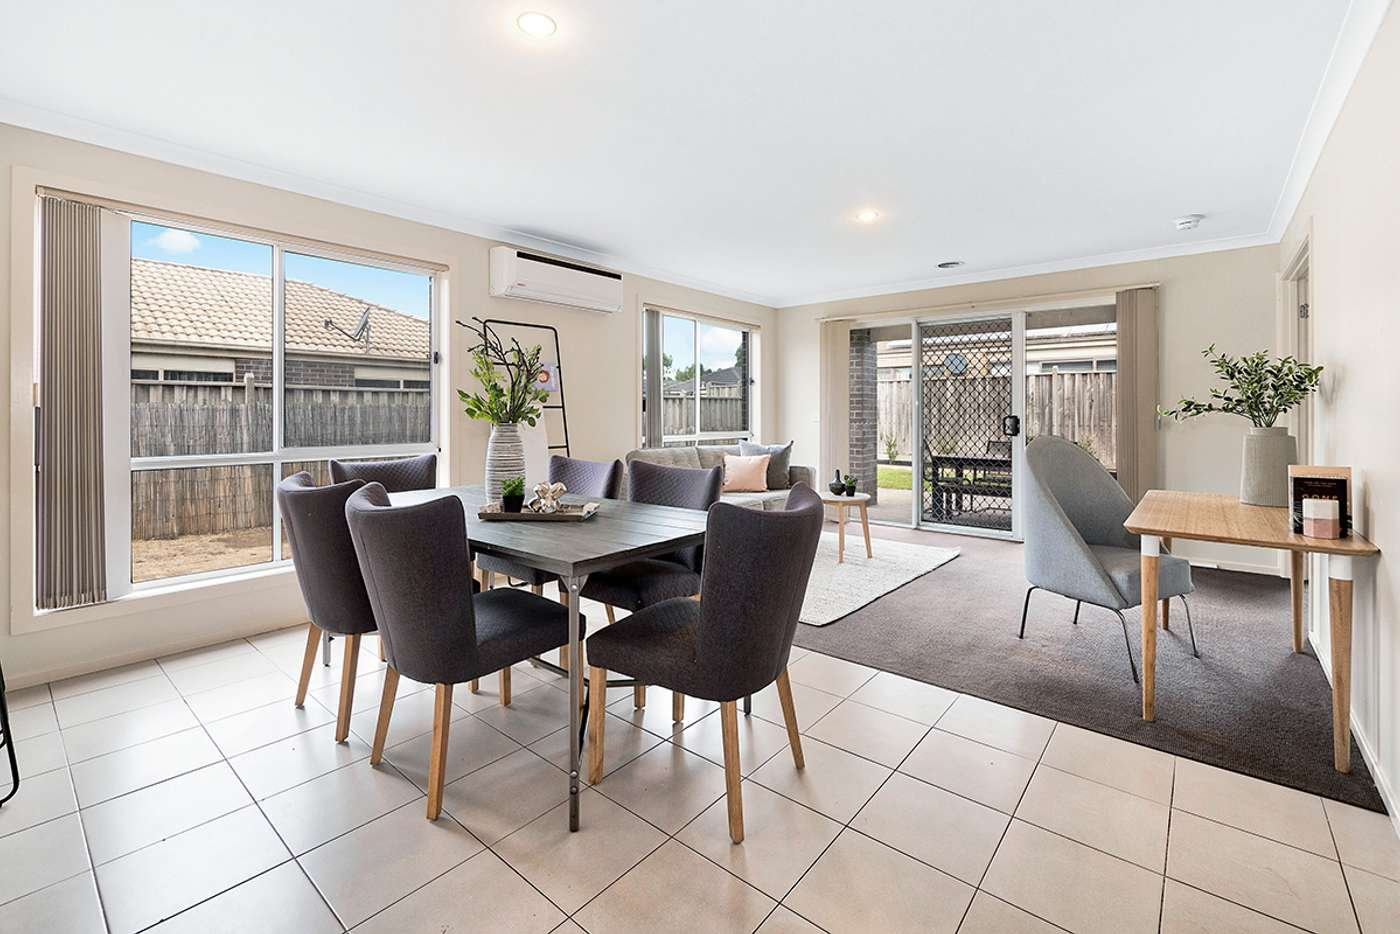 Fifth view of Homely house listing, 17 Tetrabine Way, Lyndhurst VIC 3975